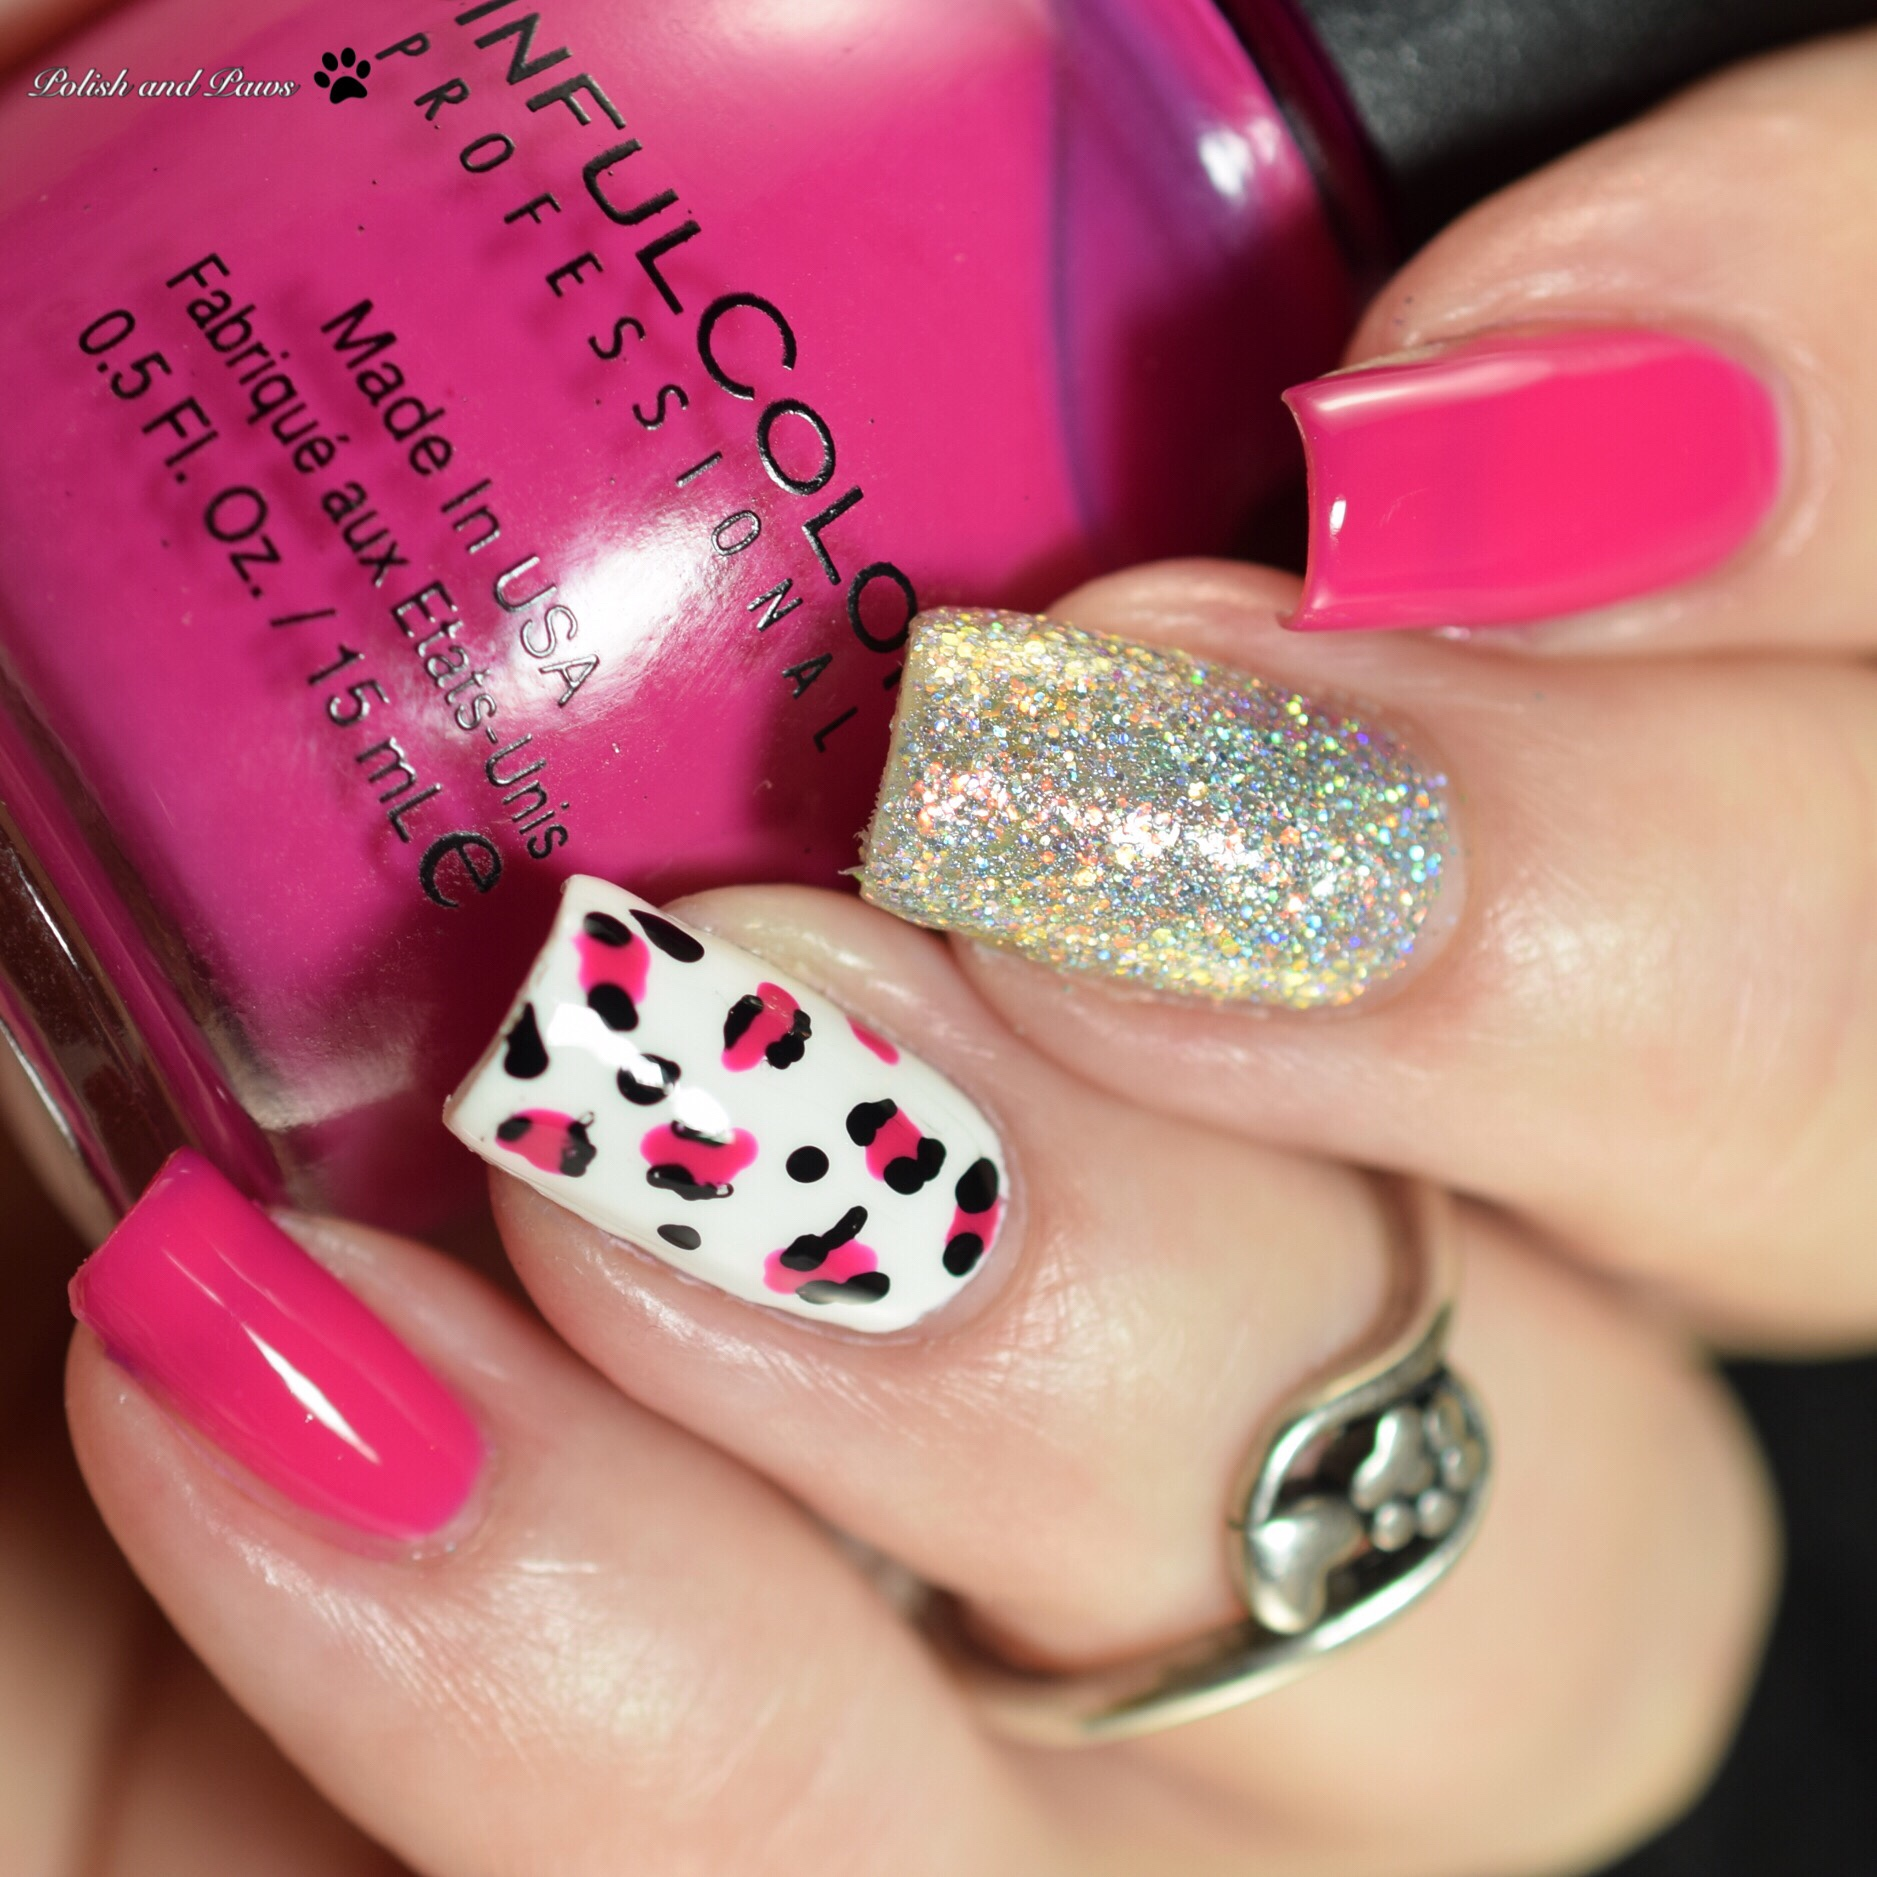 Polish and Paws Pink Leopard Mani